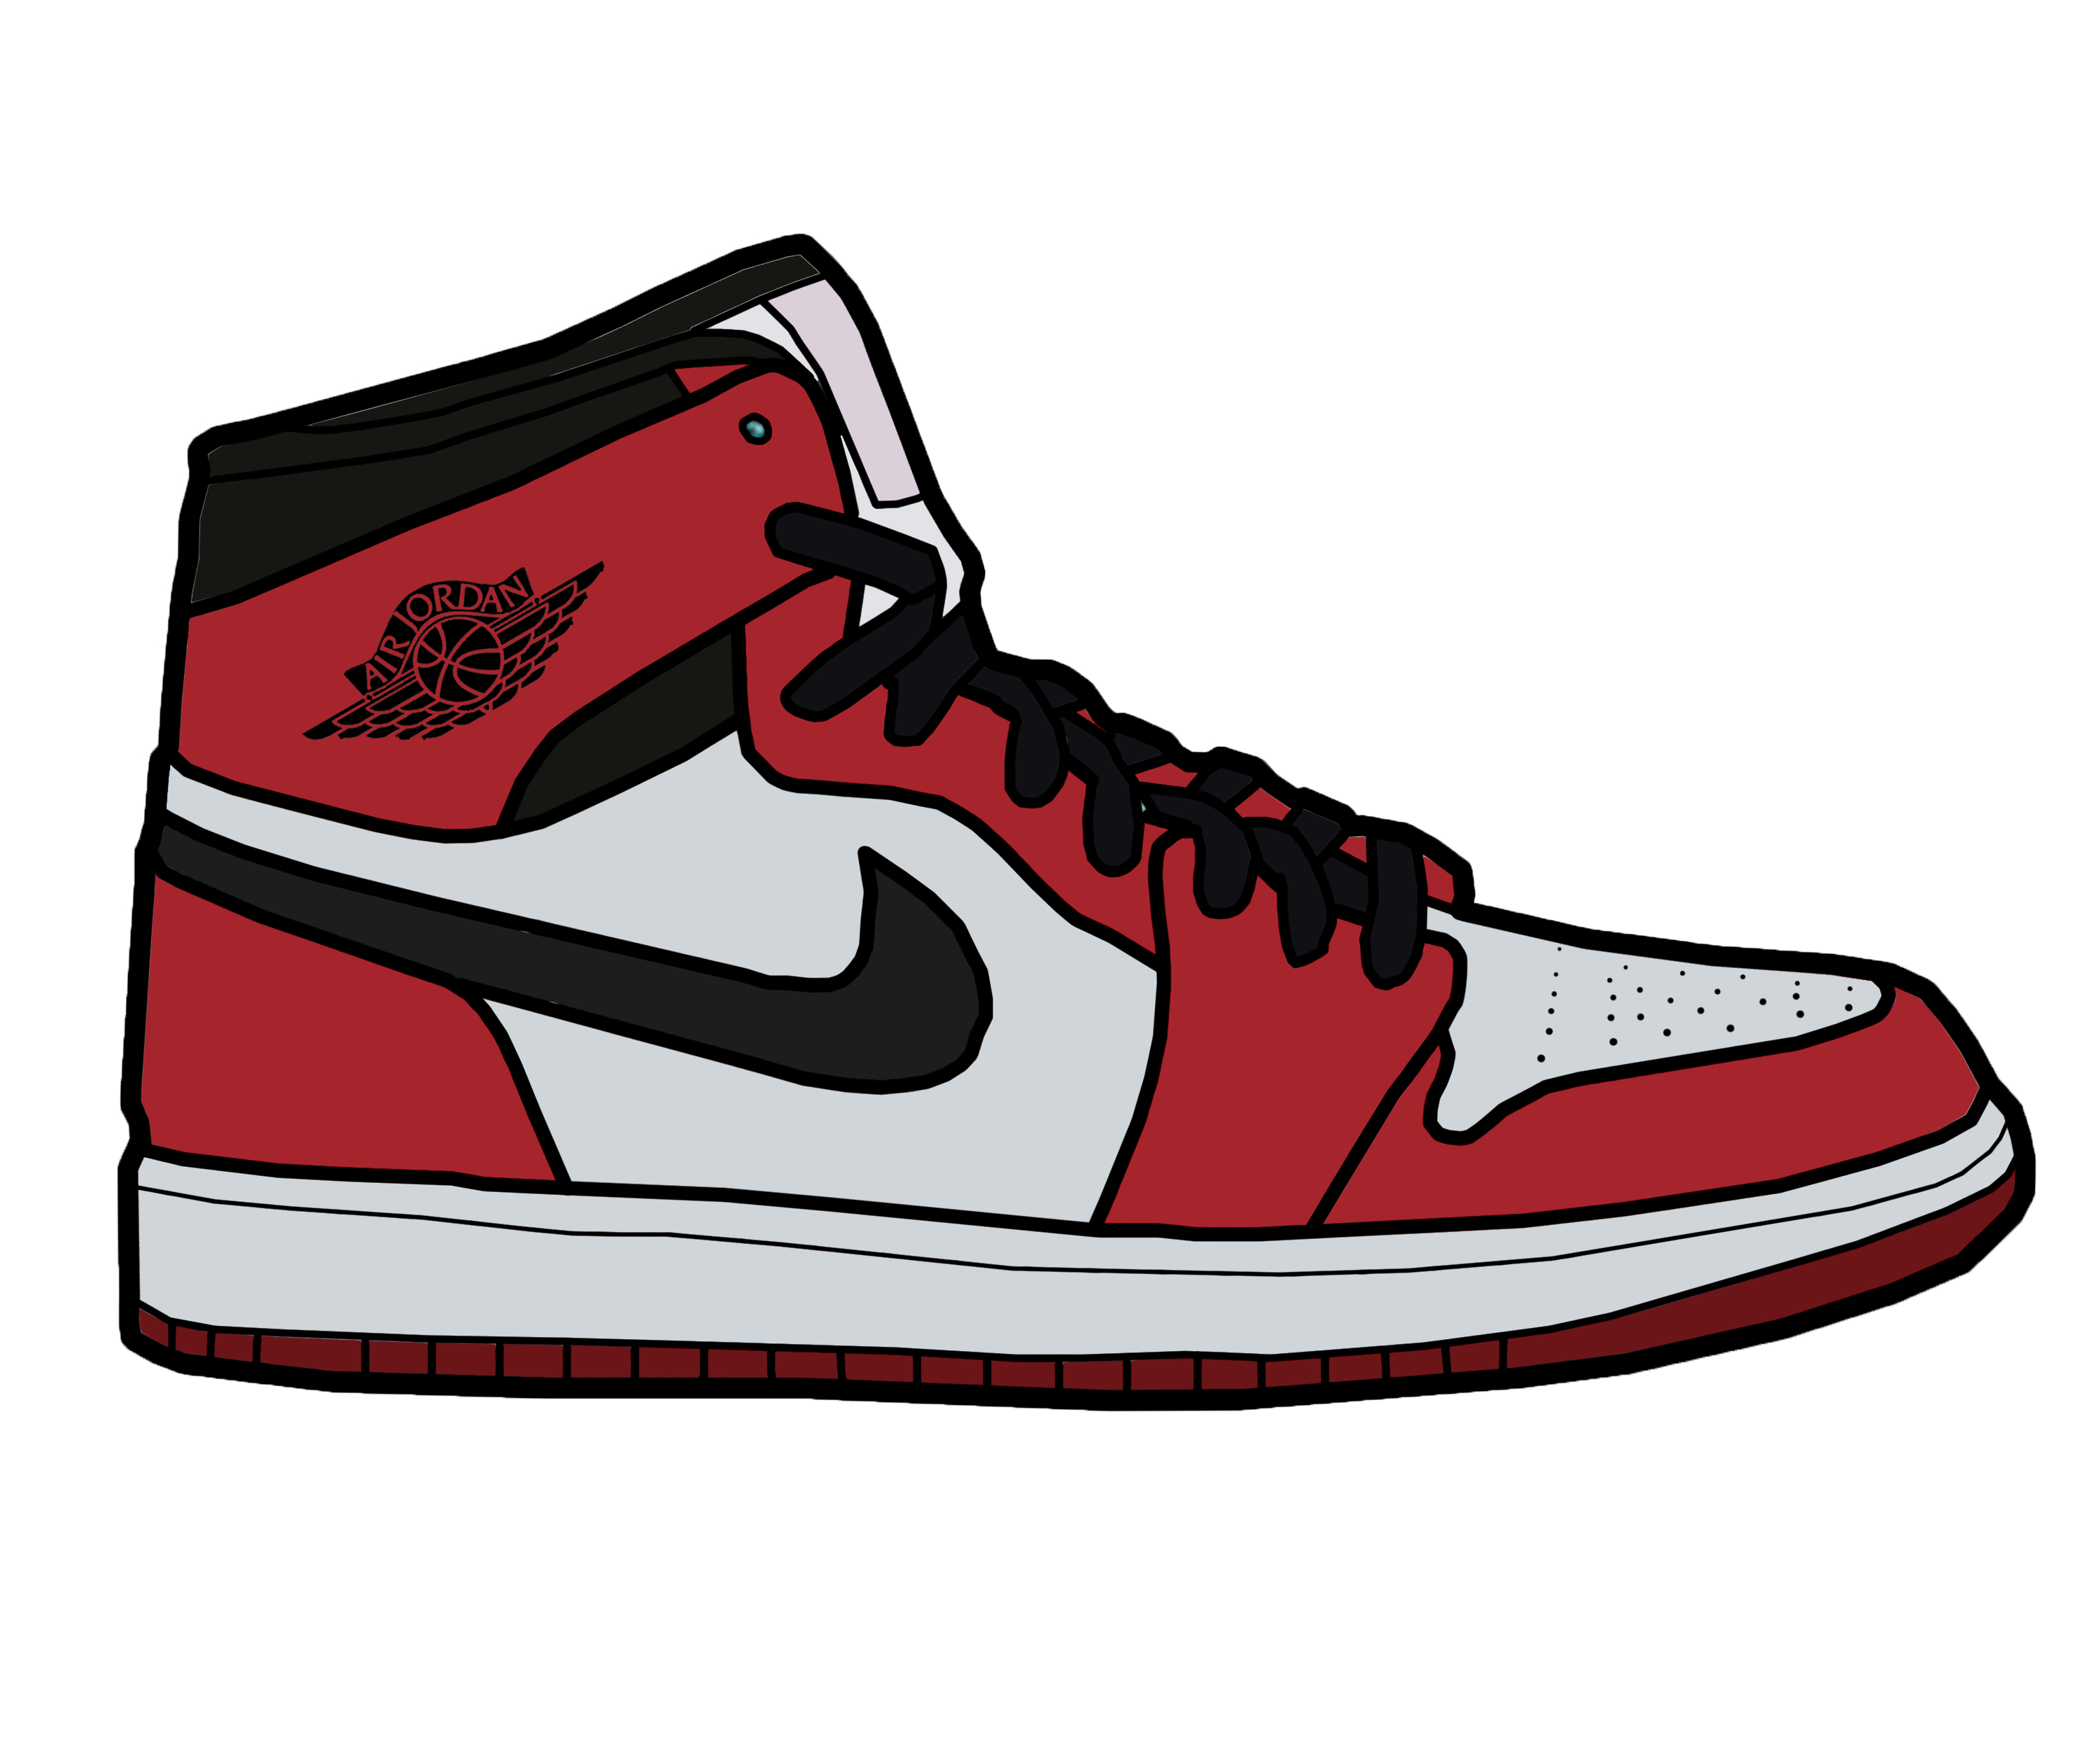 Converse clipart sneaker coloring.  collection of jordan